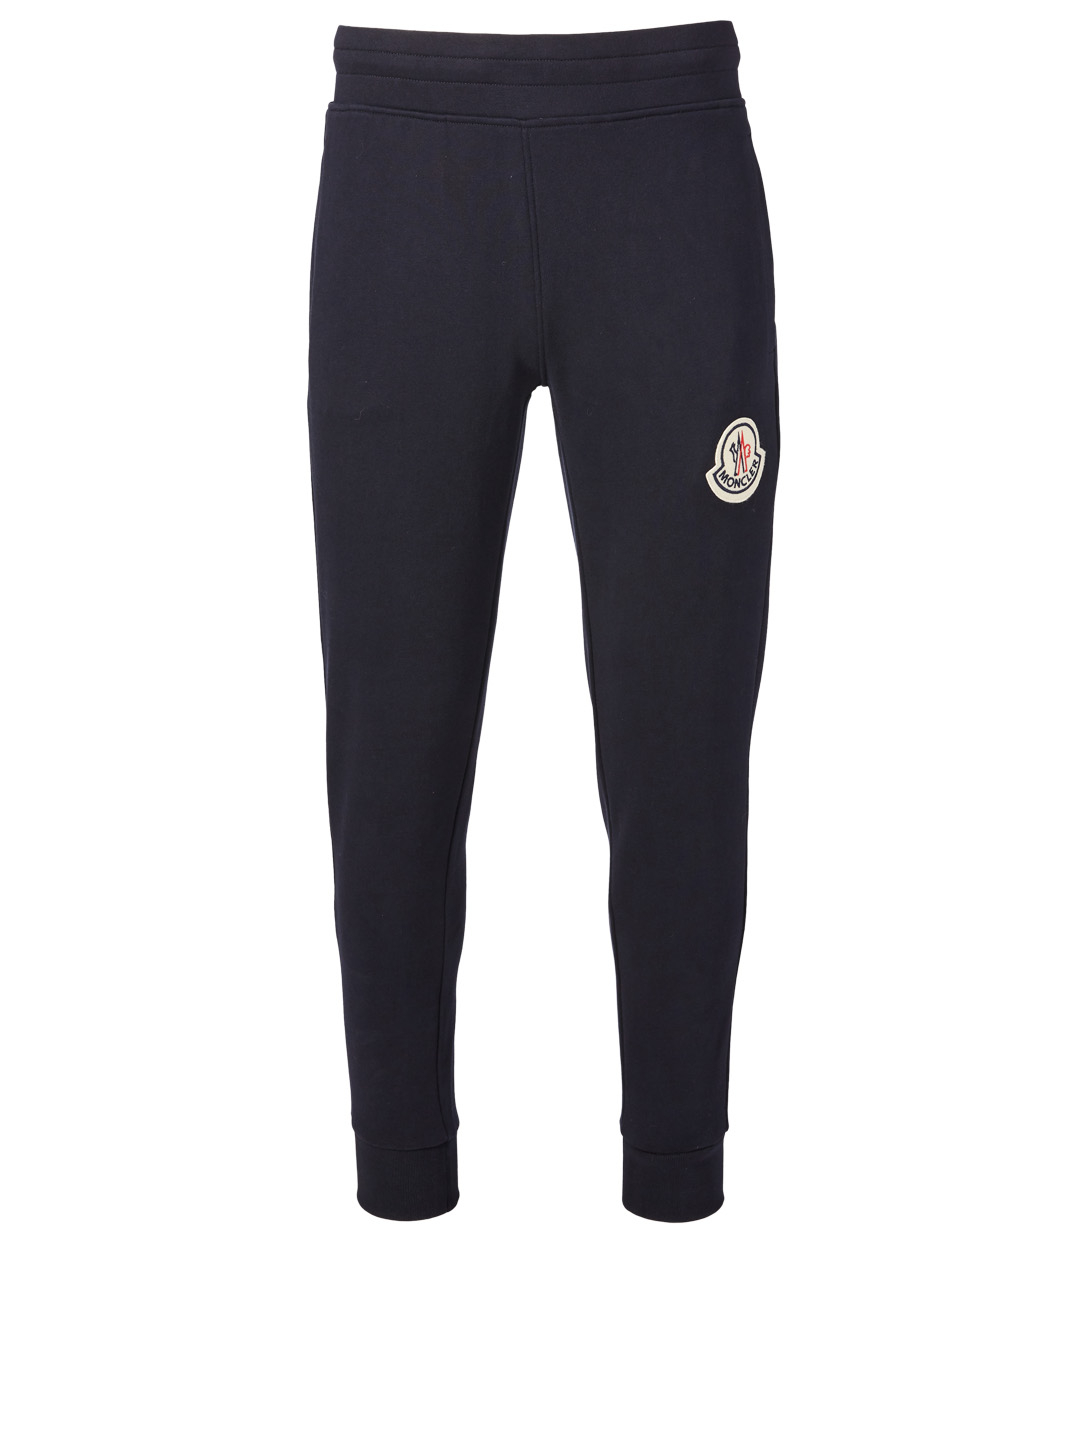 MONCLER GENIUS 2 Moncler x 1952 Jogger Pants Men's Blue